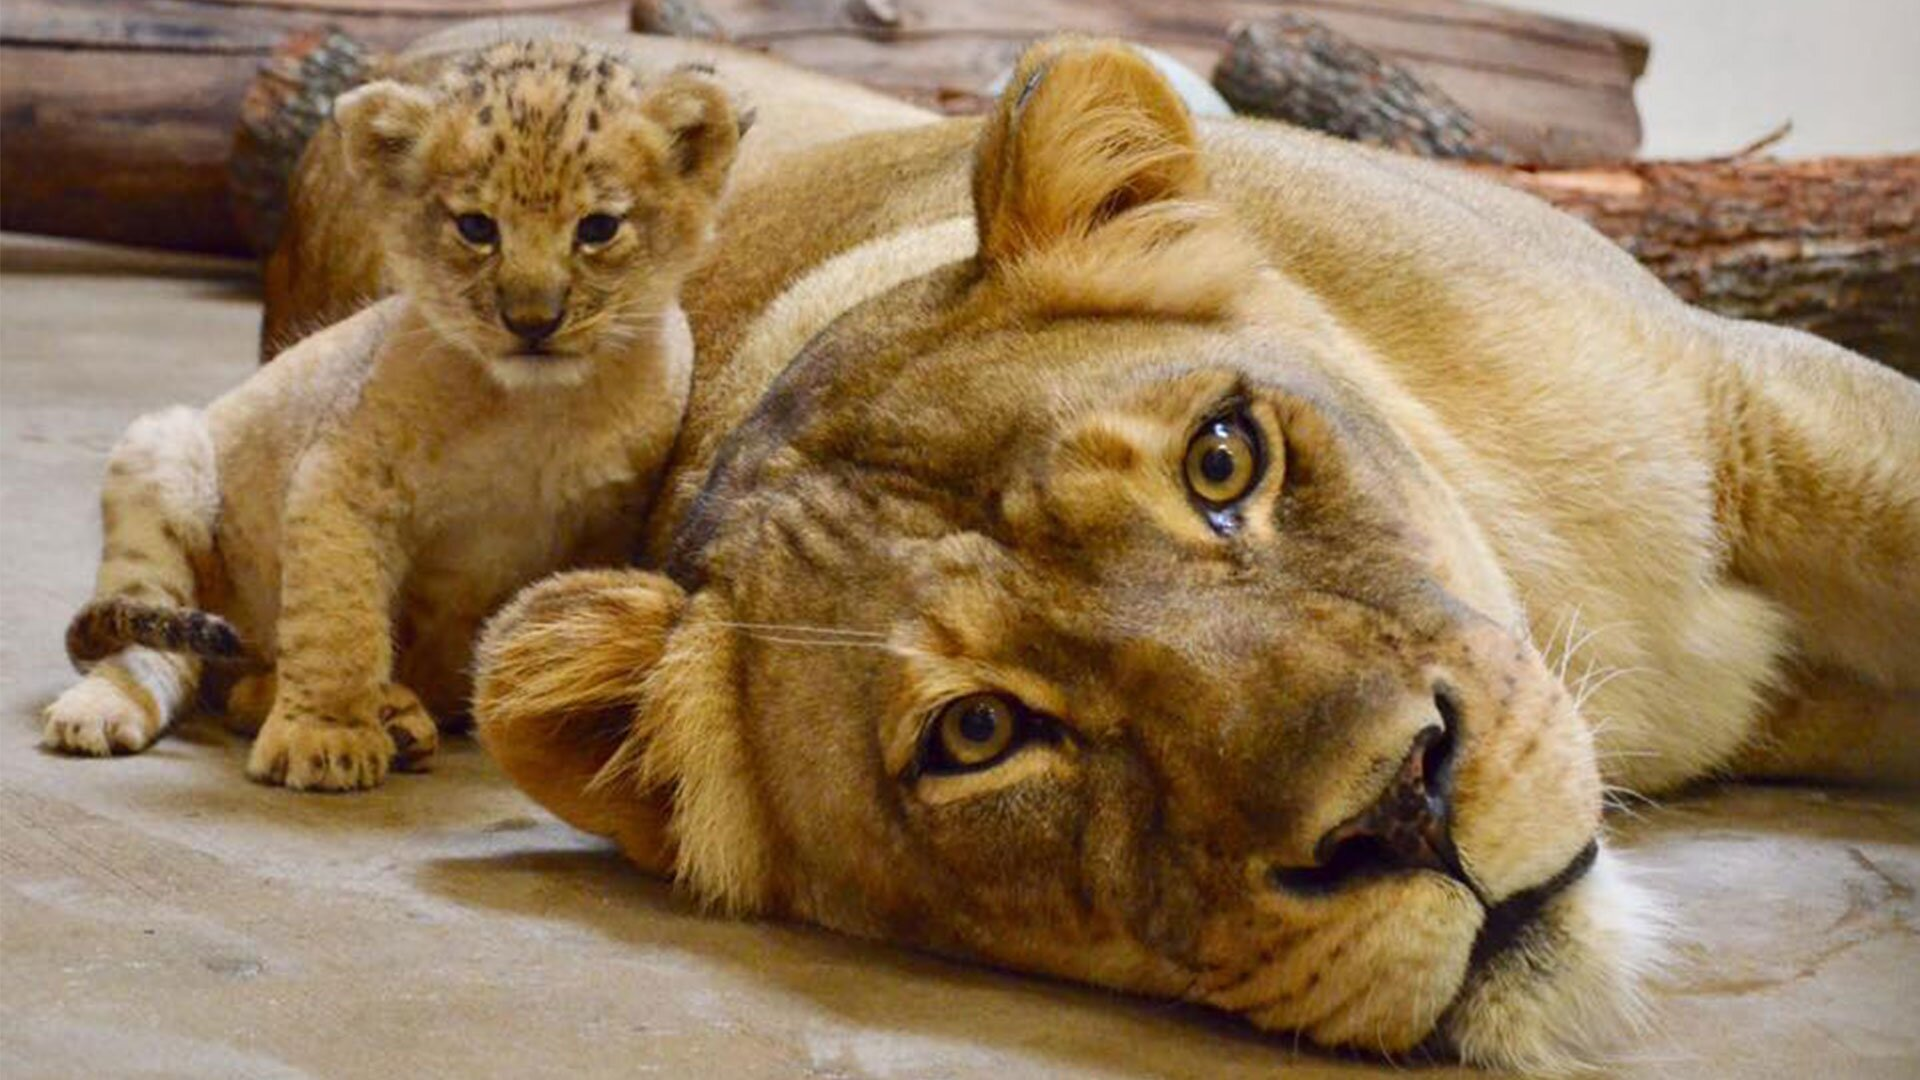 Disney Based Simba From The Lion King On This Dallas Zoo Lion Cub Southern Living